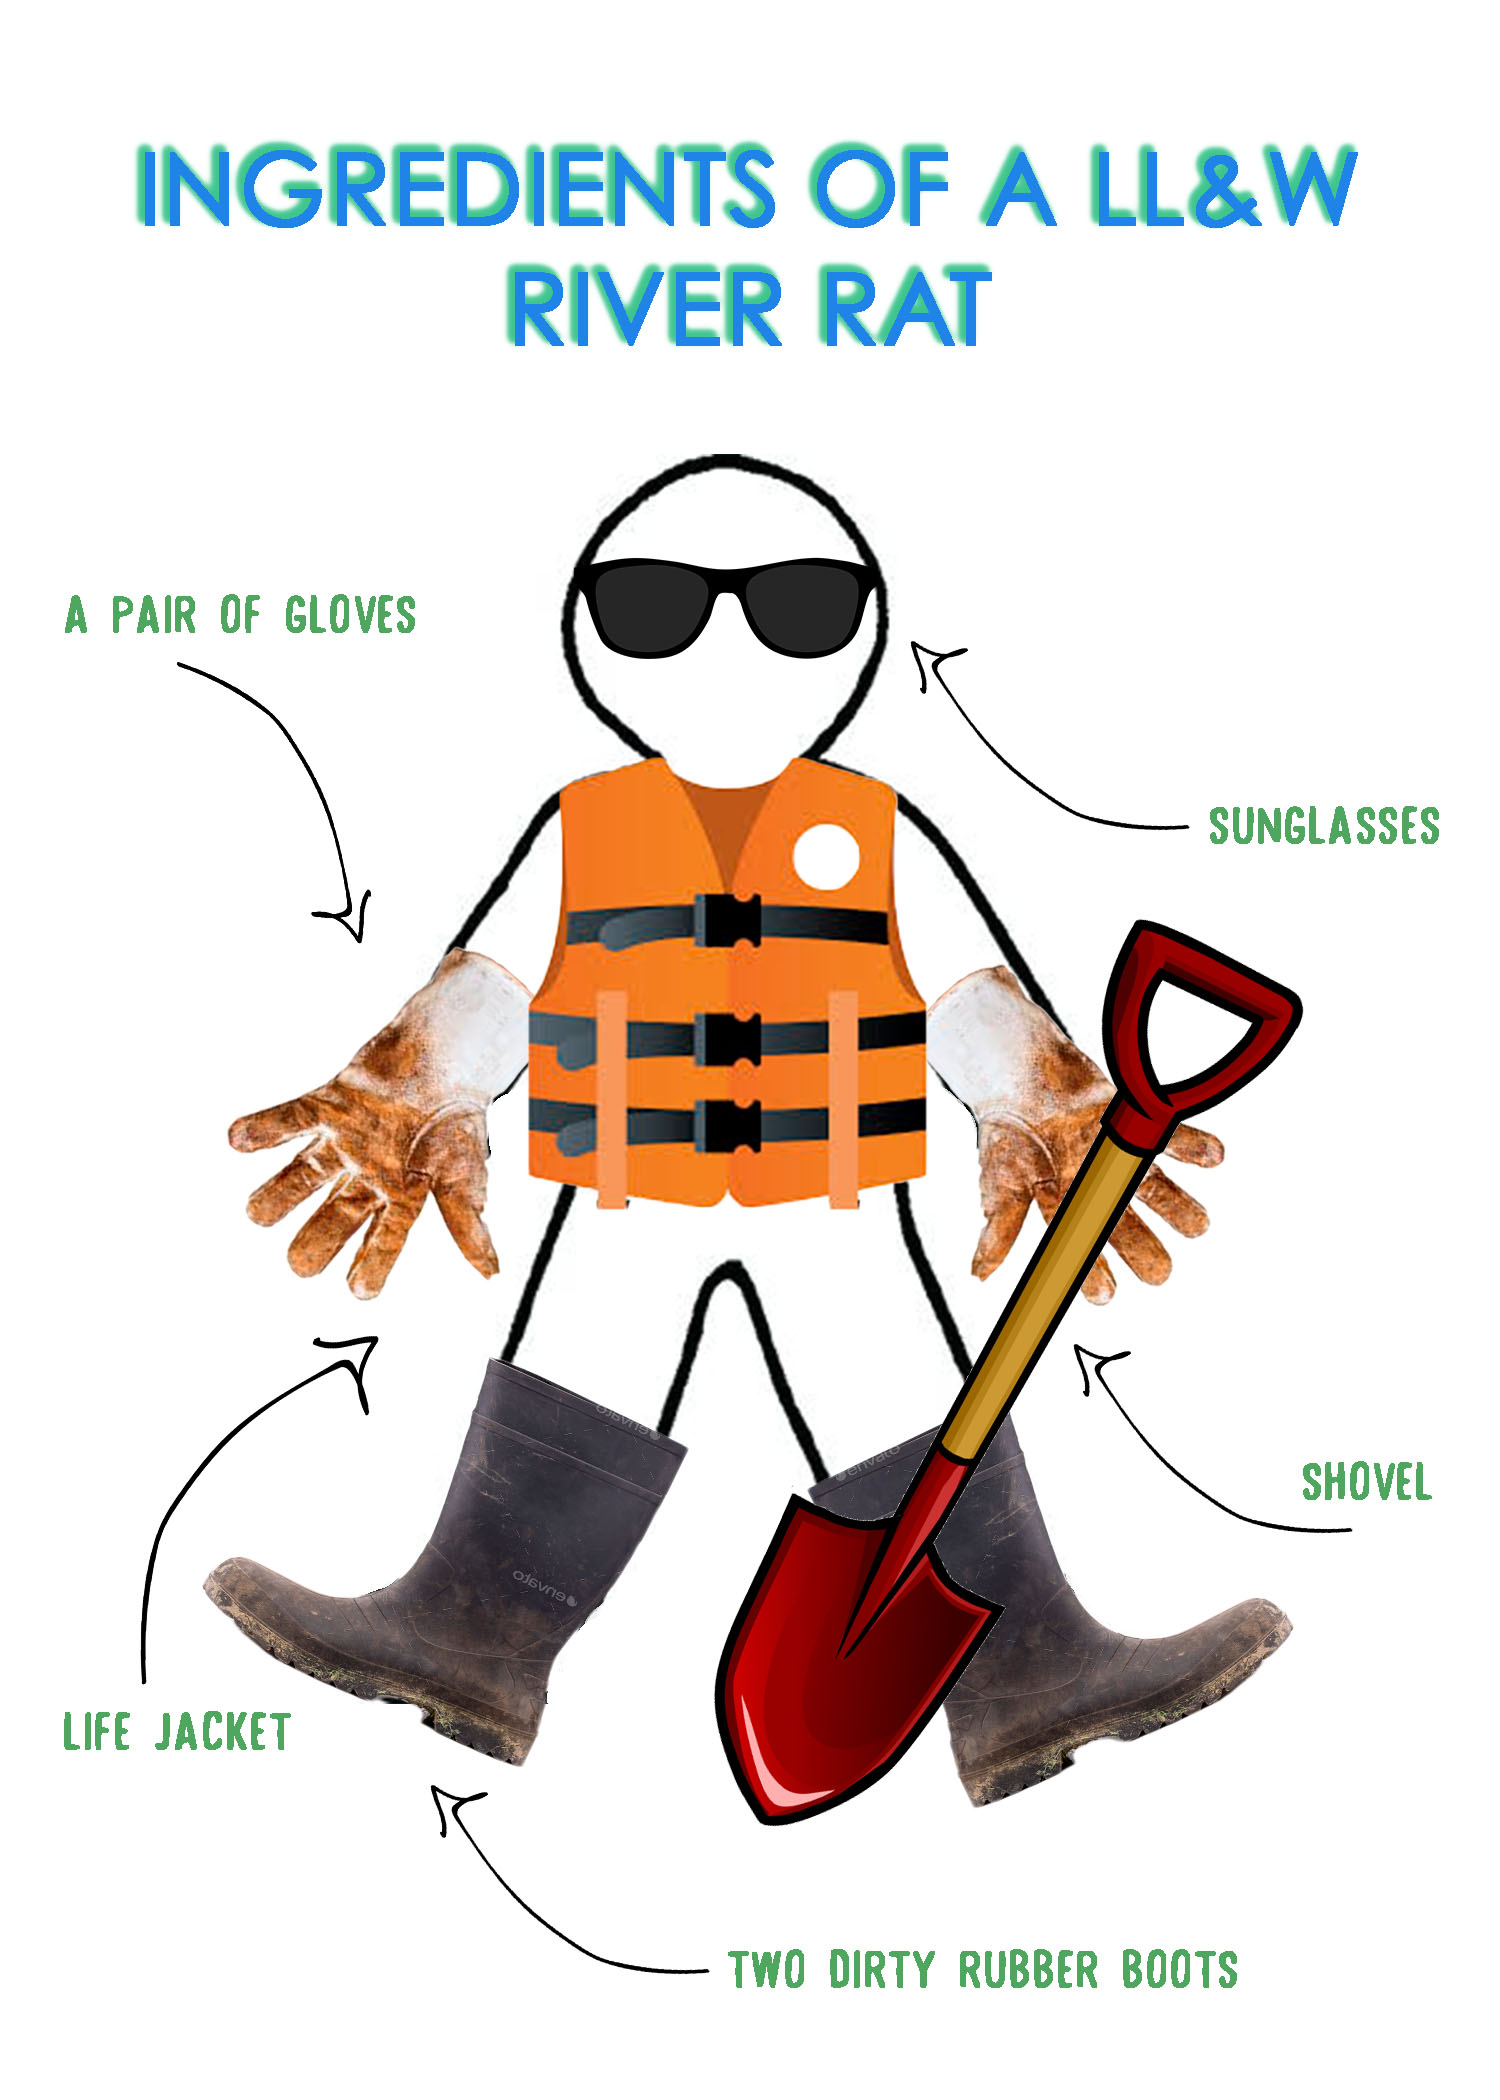 Ingredients of a LL&W River Rat